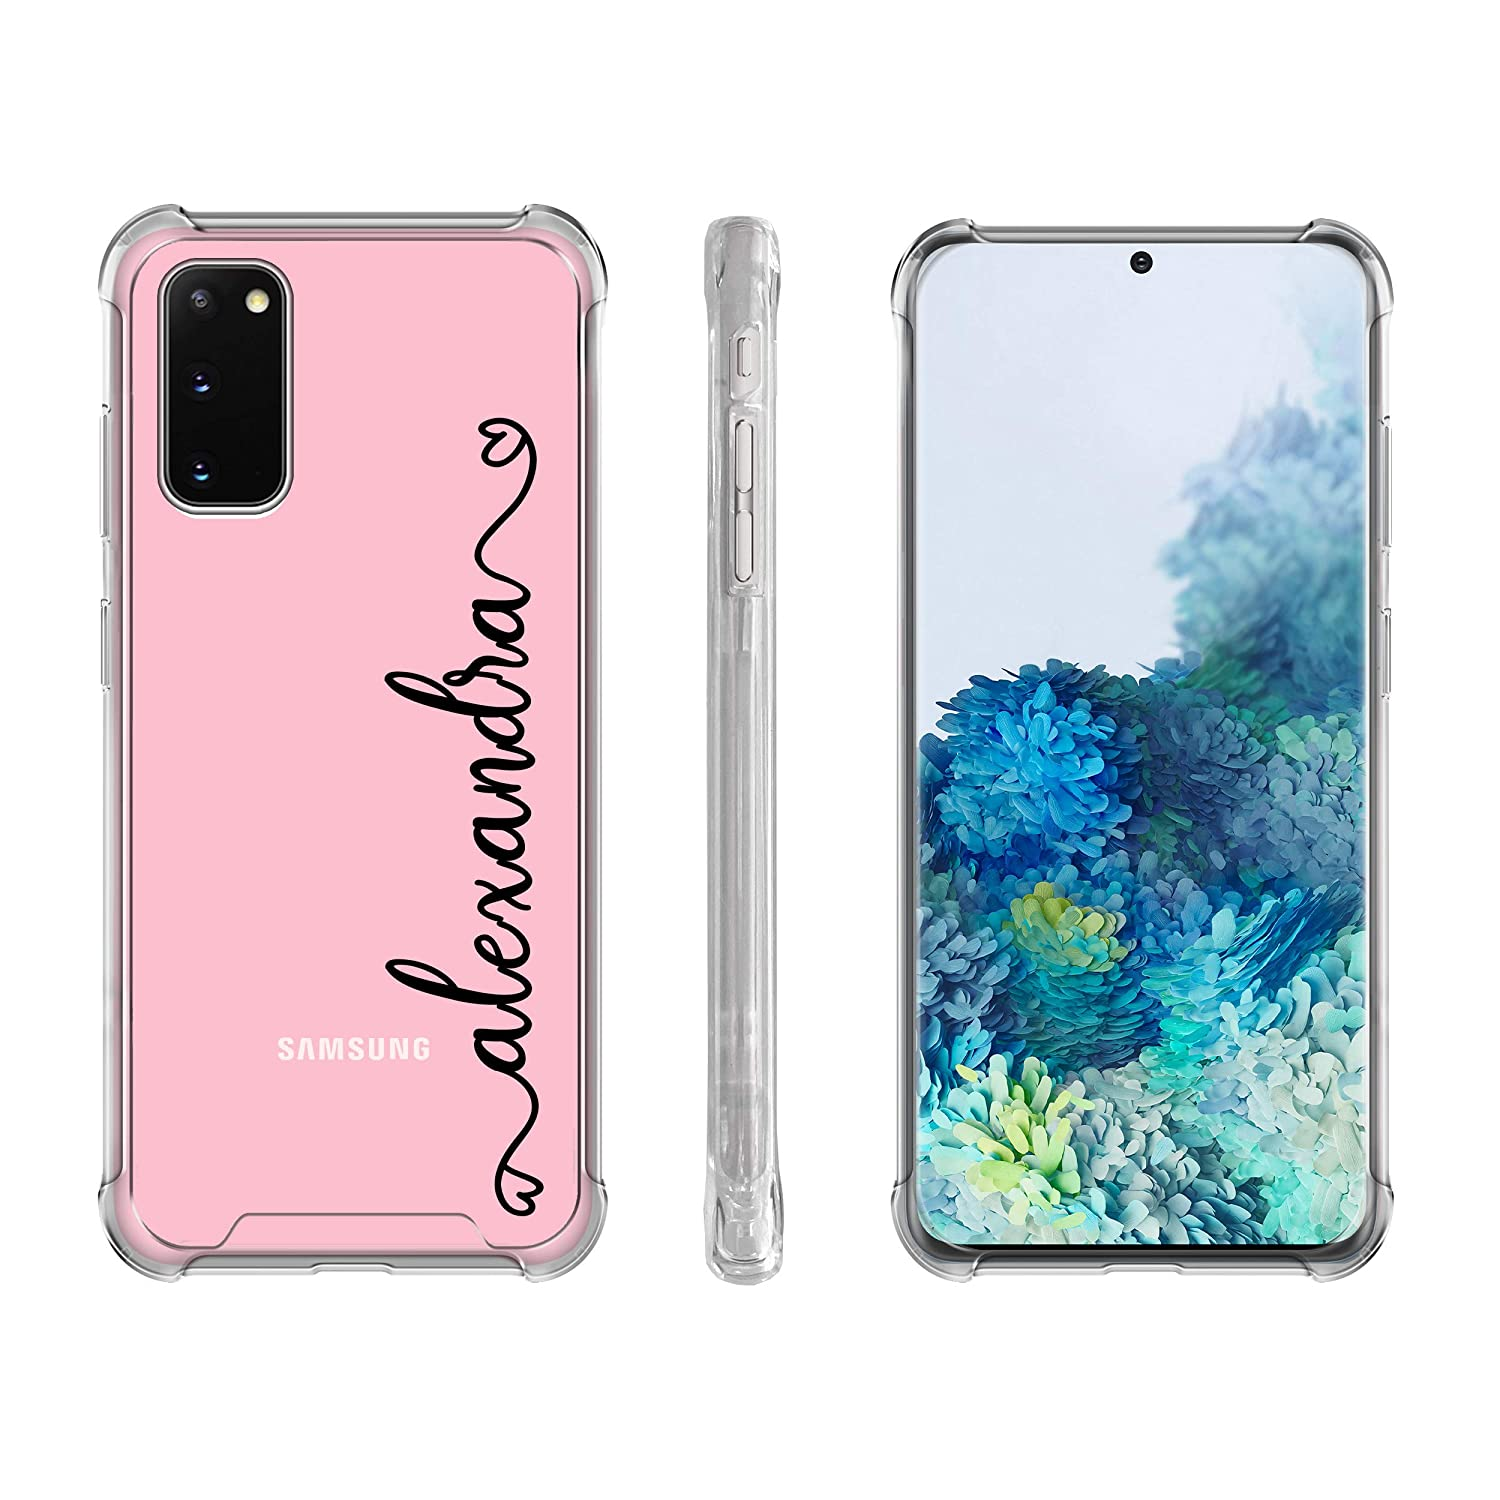 Galaxy S9 Plus Case Personalized Case For Samsung S9 S8 Case Custom Name Initials Monogrammed Clear Phone Handwriting Shockproof Protective Cover U3